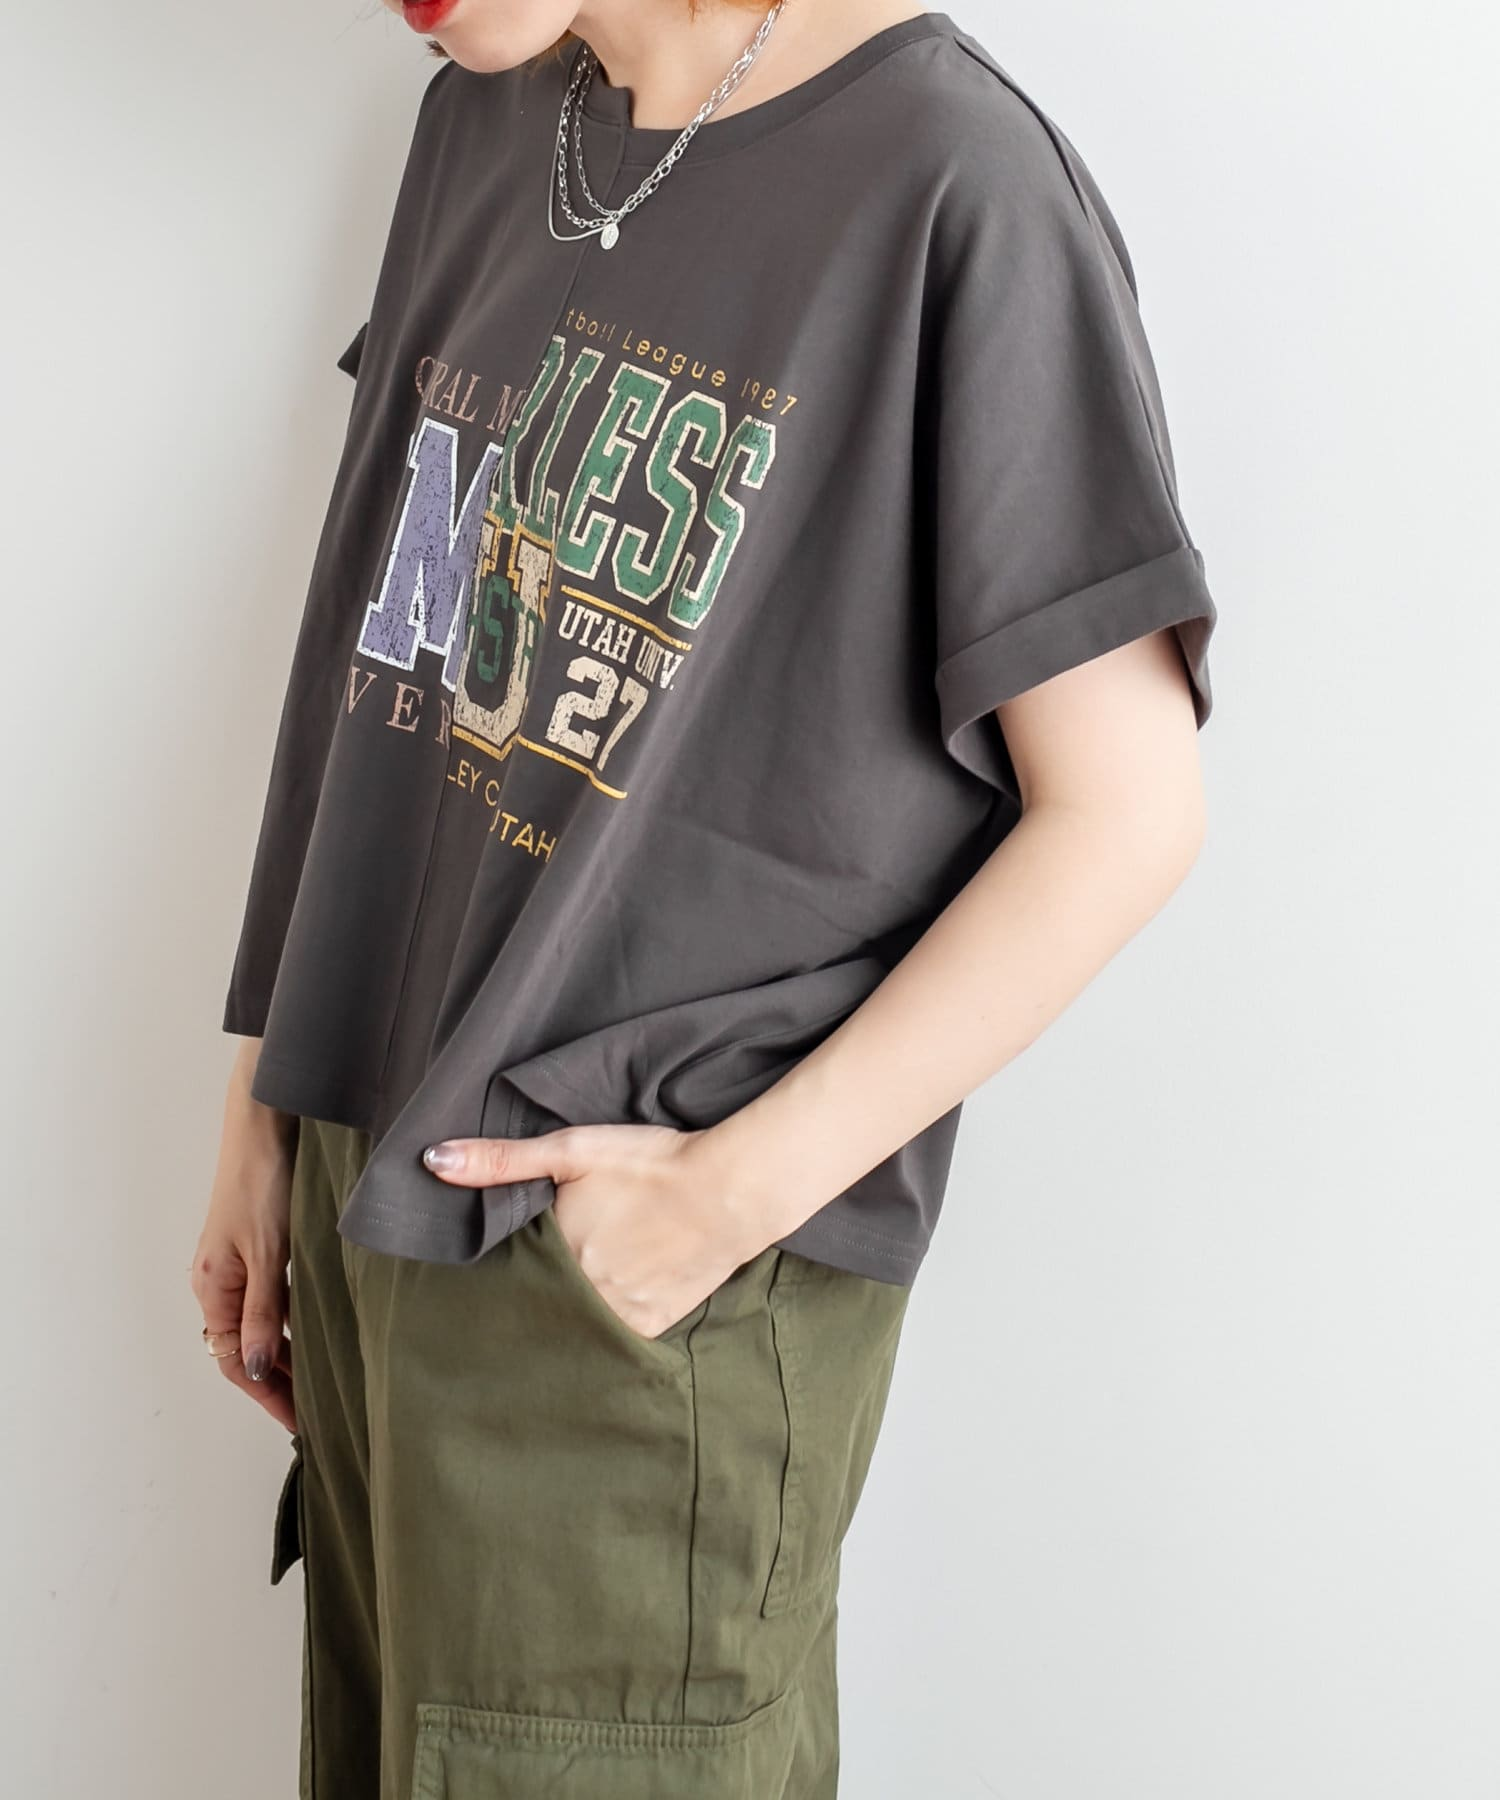 NICE CLAUP OUTLET(ナイスクラップ アウトレット) リメイク風カレッジpt ショートPO